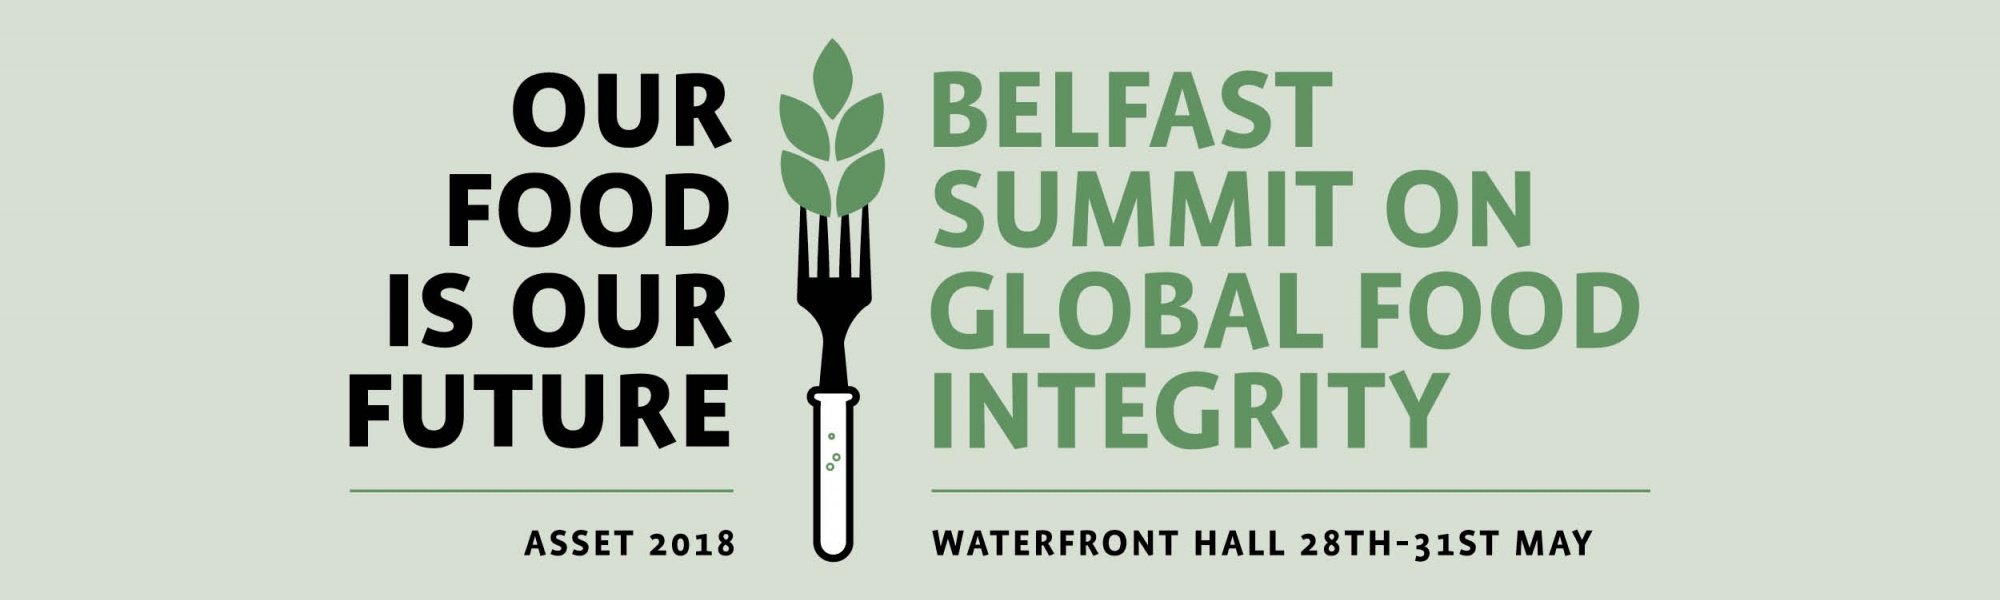 Belfast Summit on Global Food Integrity 28 - 31 May 2018